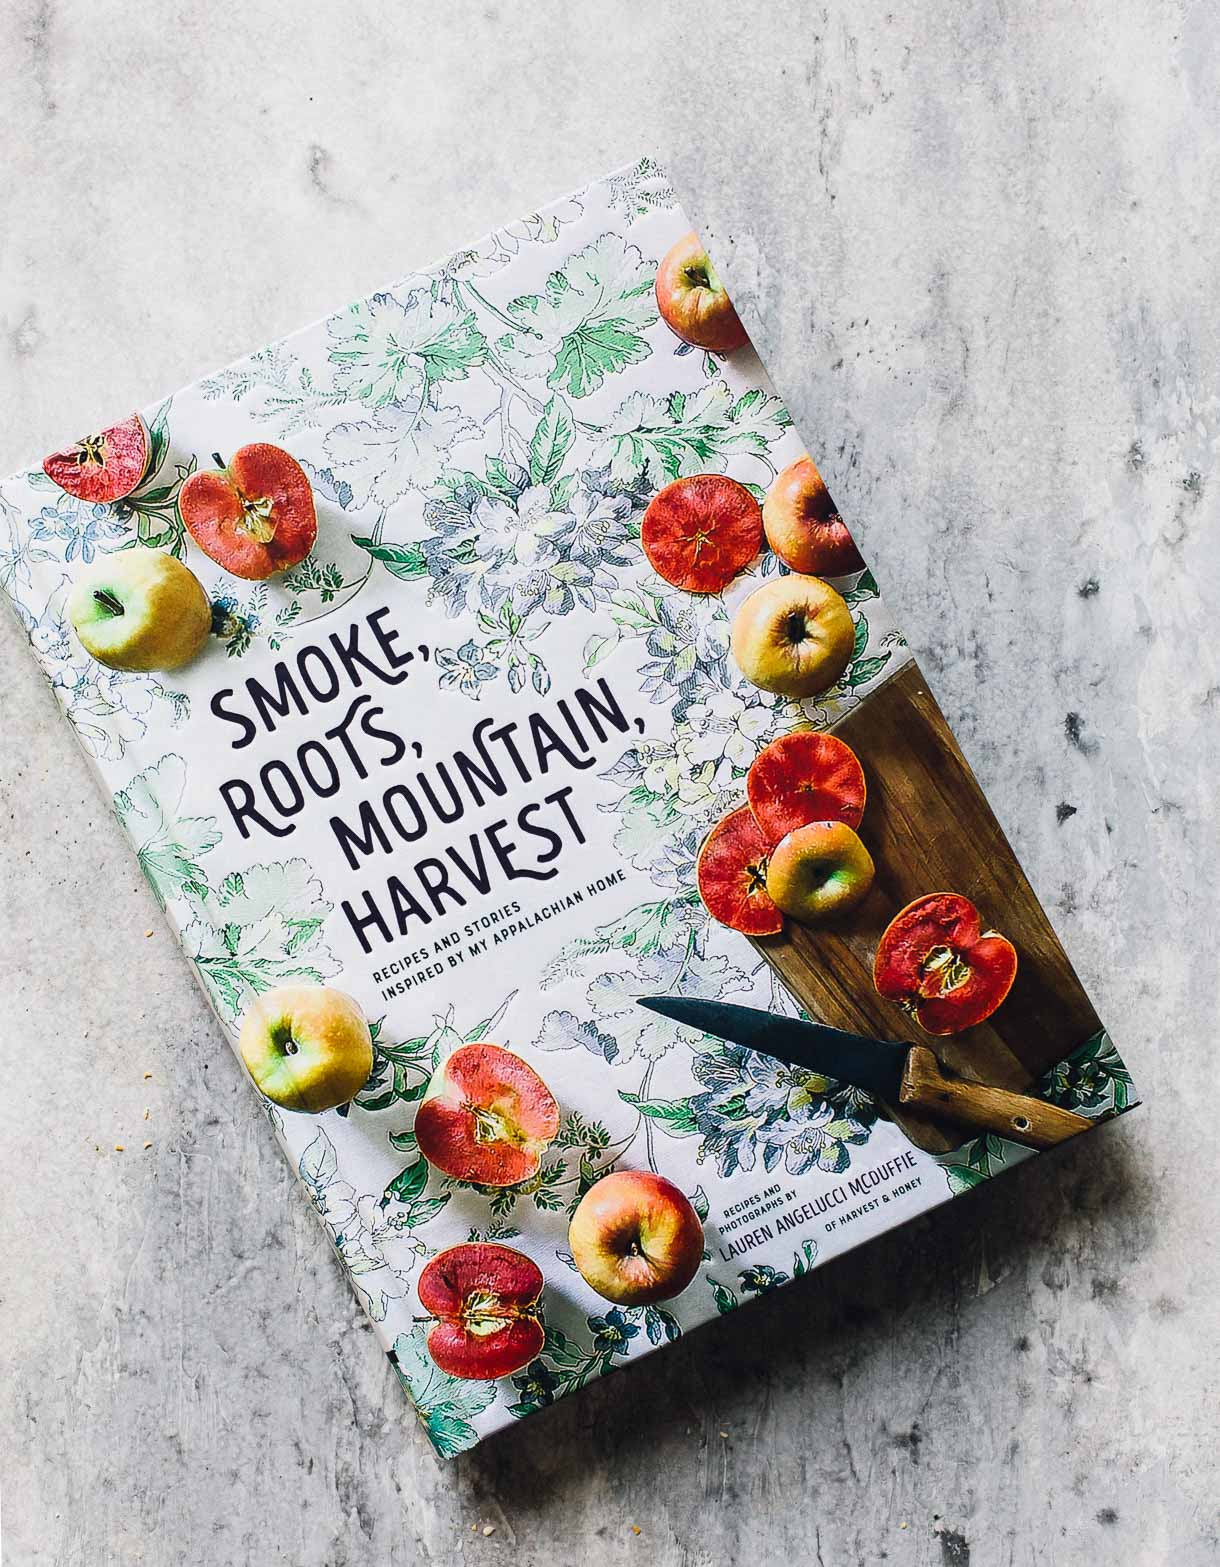 Smoke, Roots, Mountain, Harvest Cookbook by Lauren McDuffie